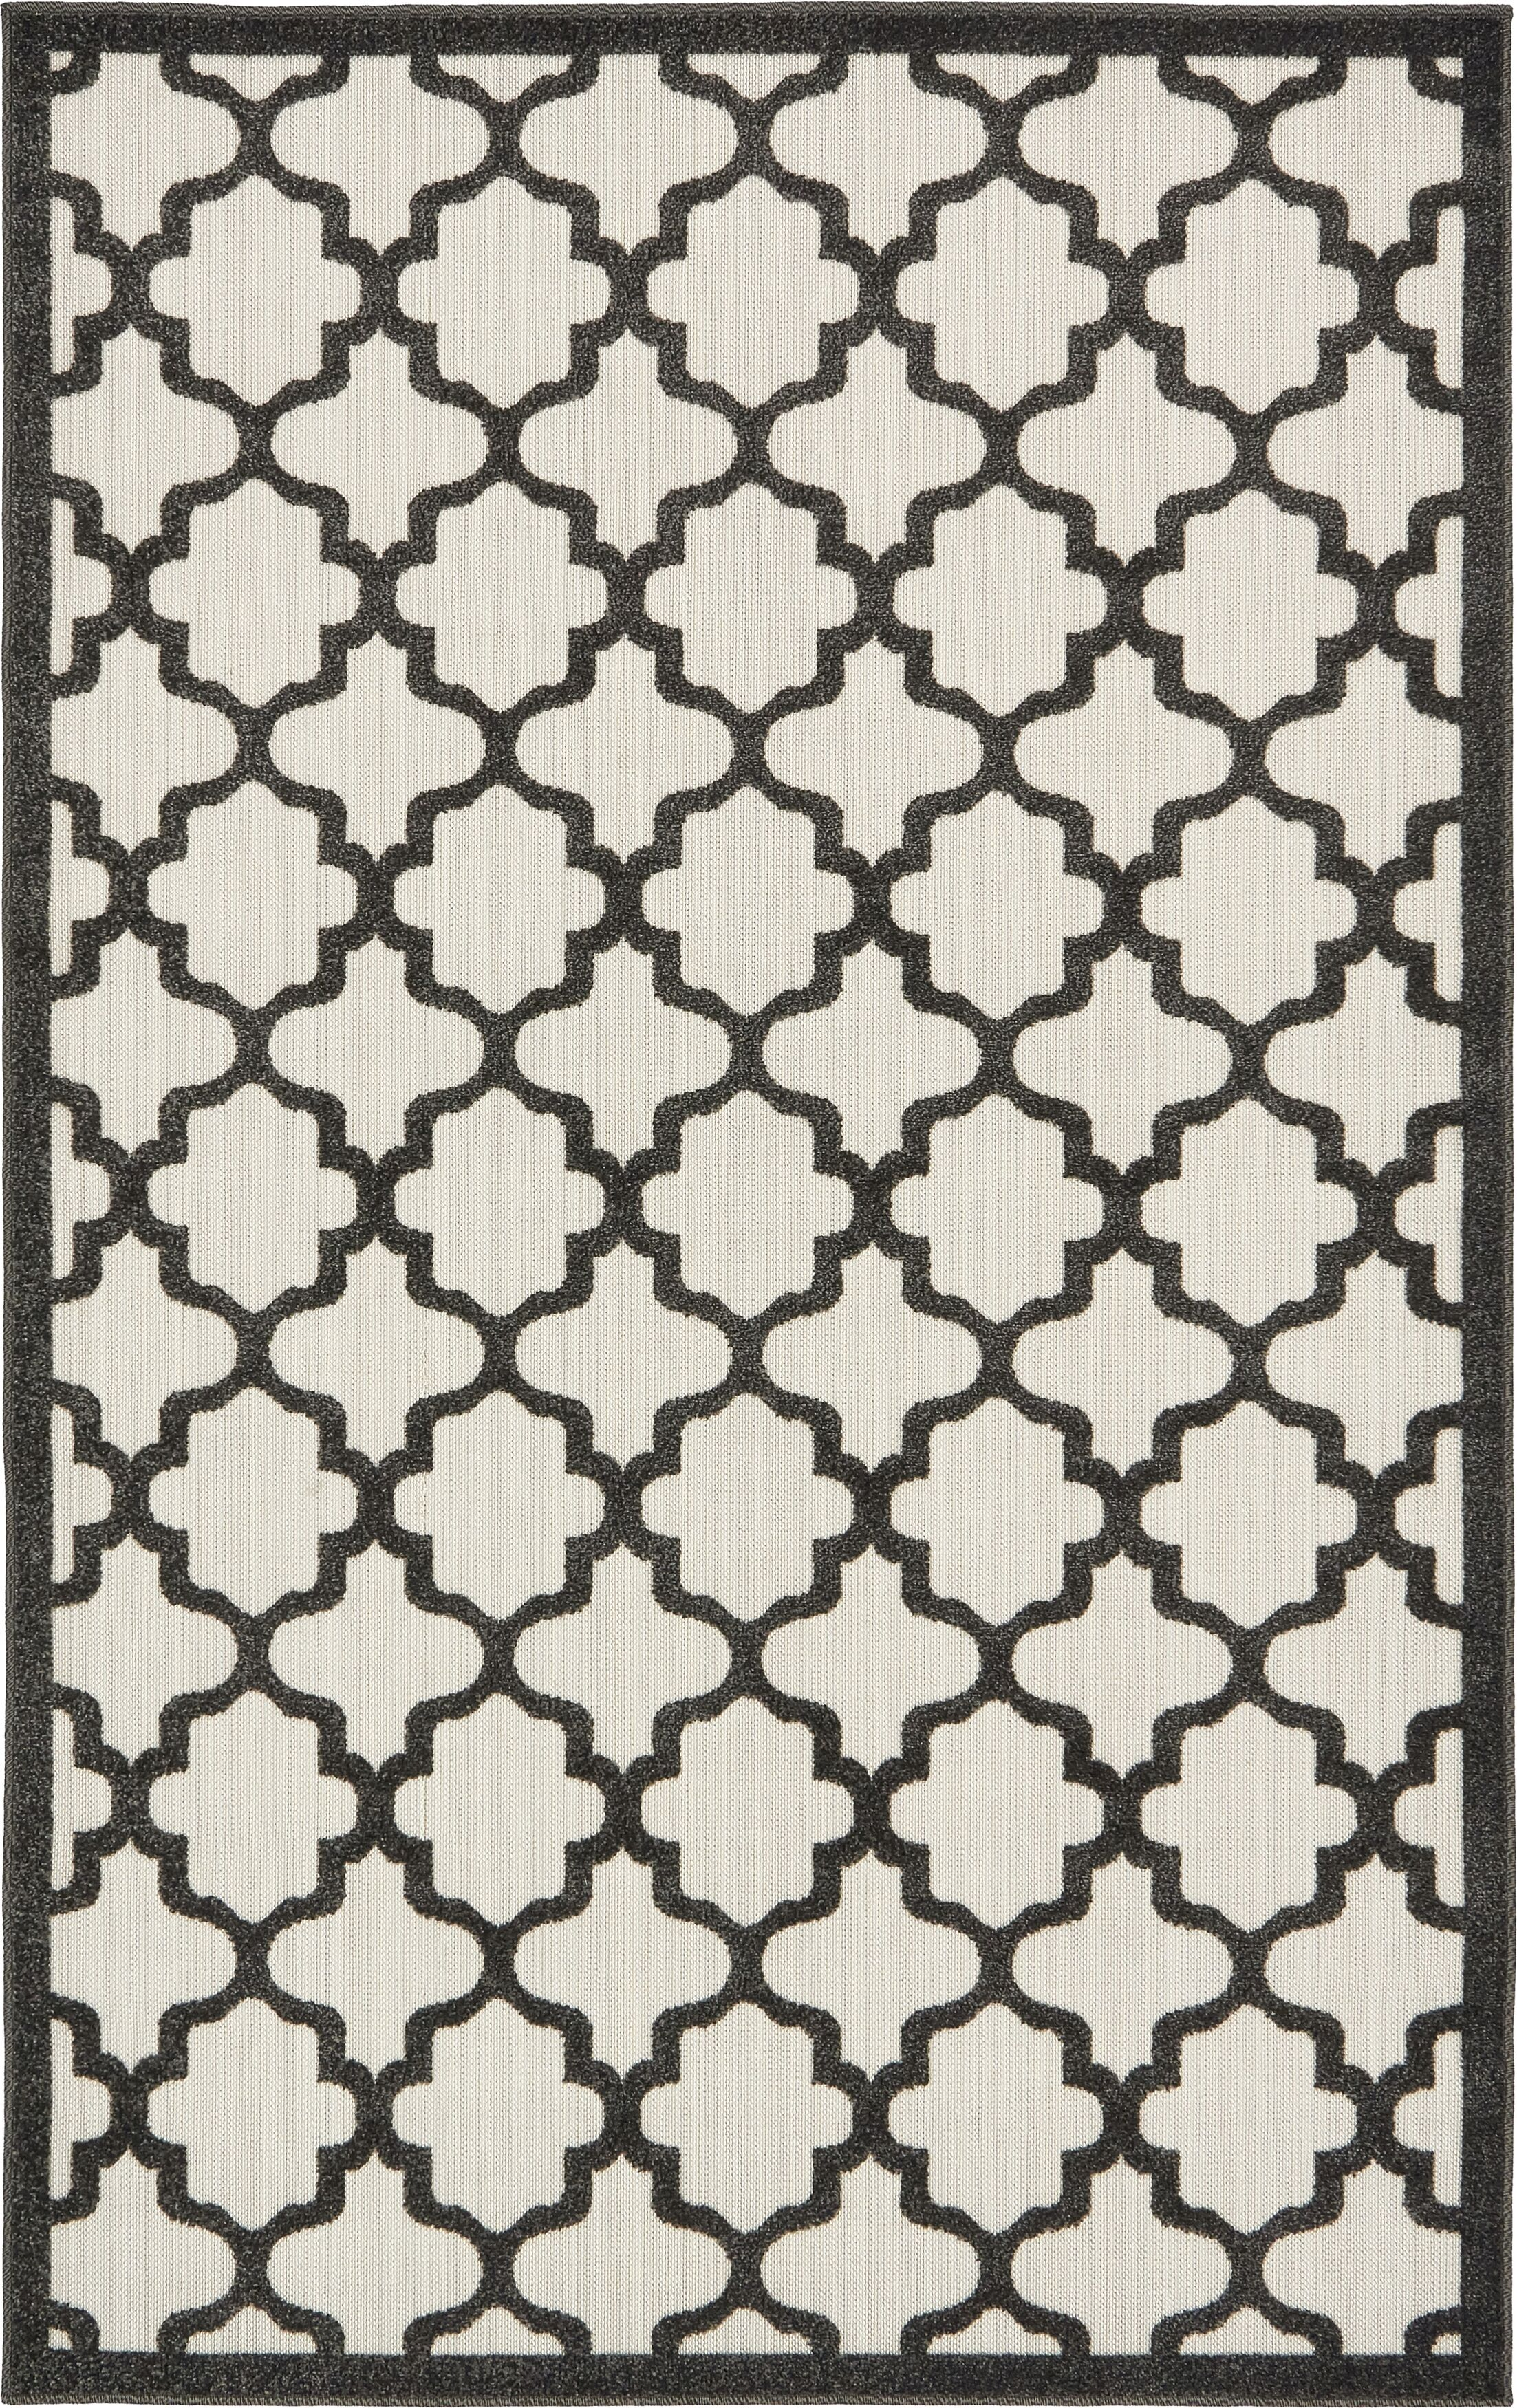 Agapius Black Indoor/Outdoor Area Rug Rug Size: Rectangle 5' x 8'